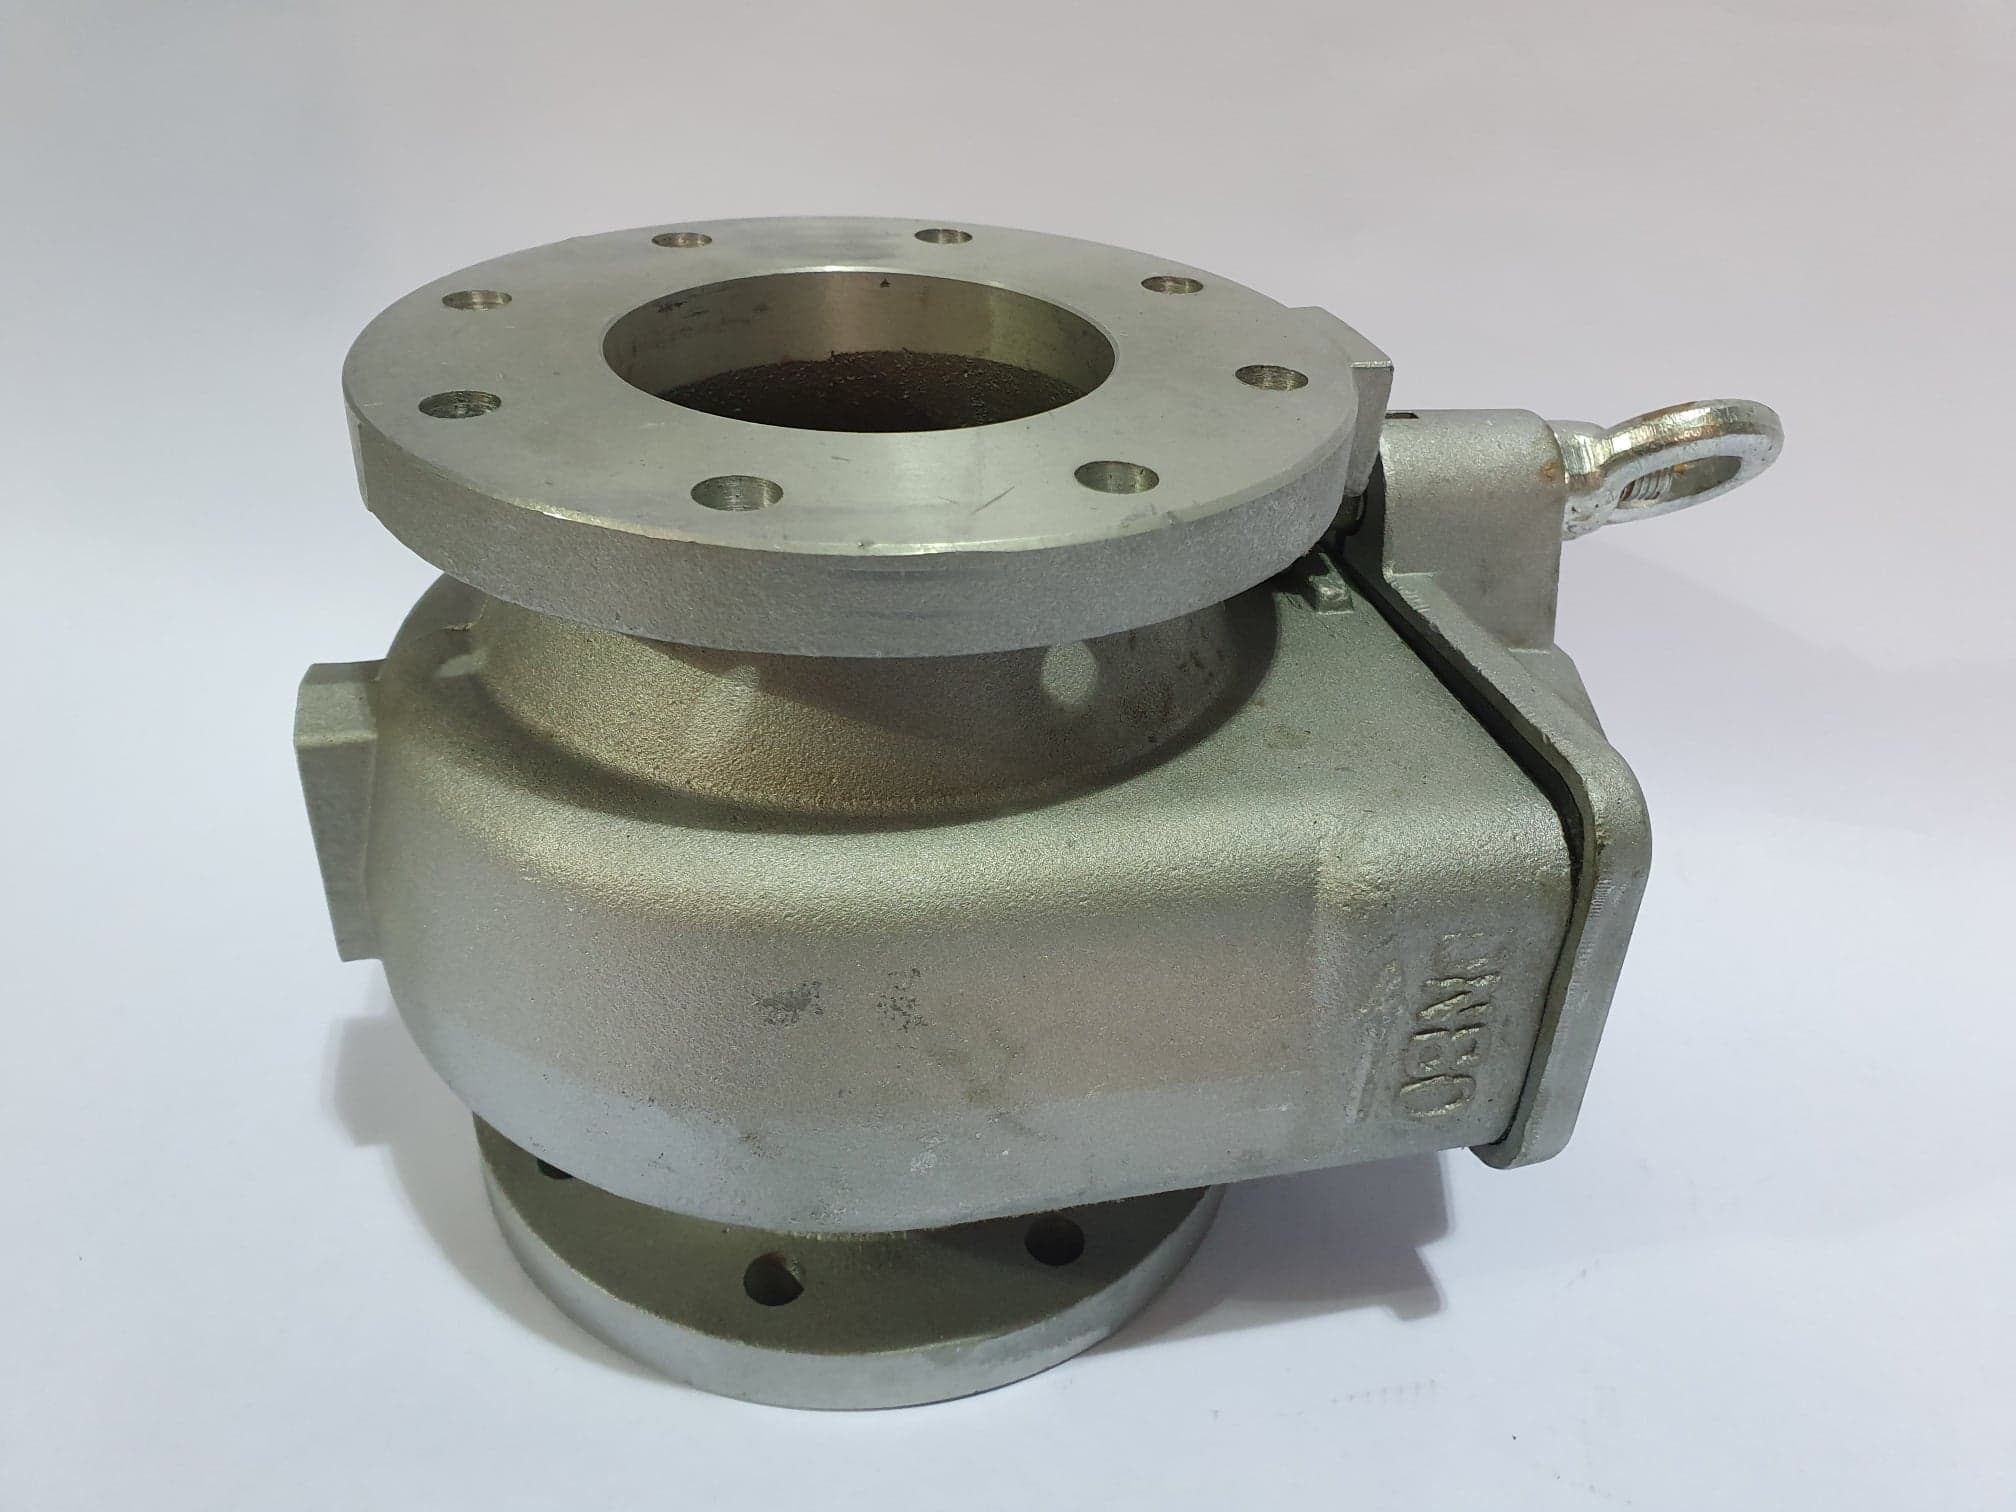 In Line Filter Assy Complete  (80 Mesh)